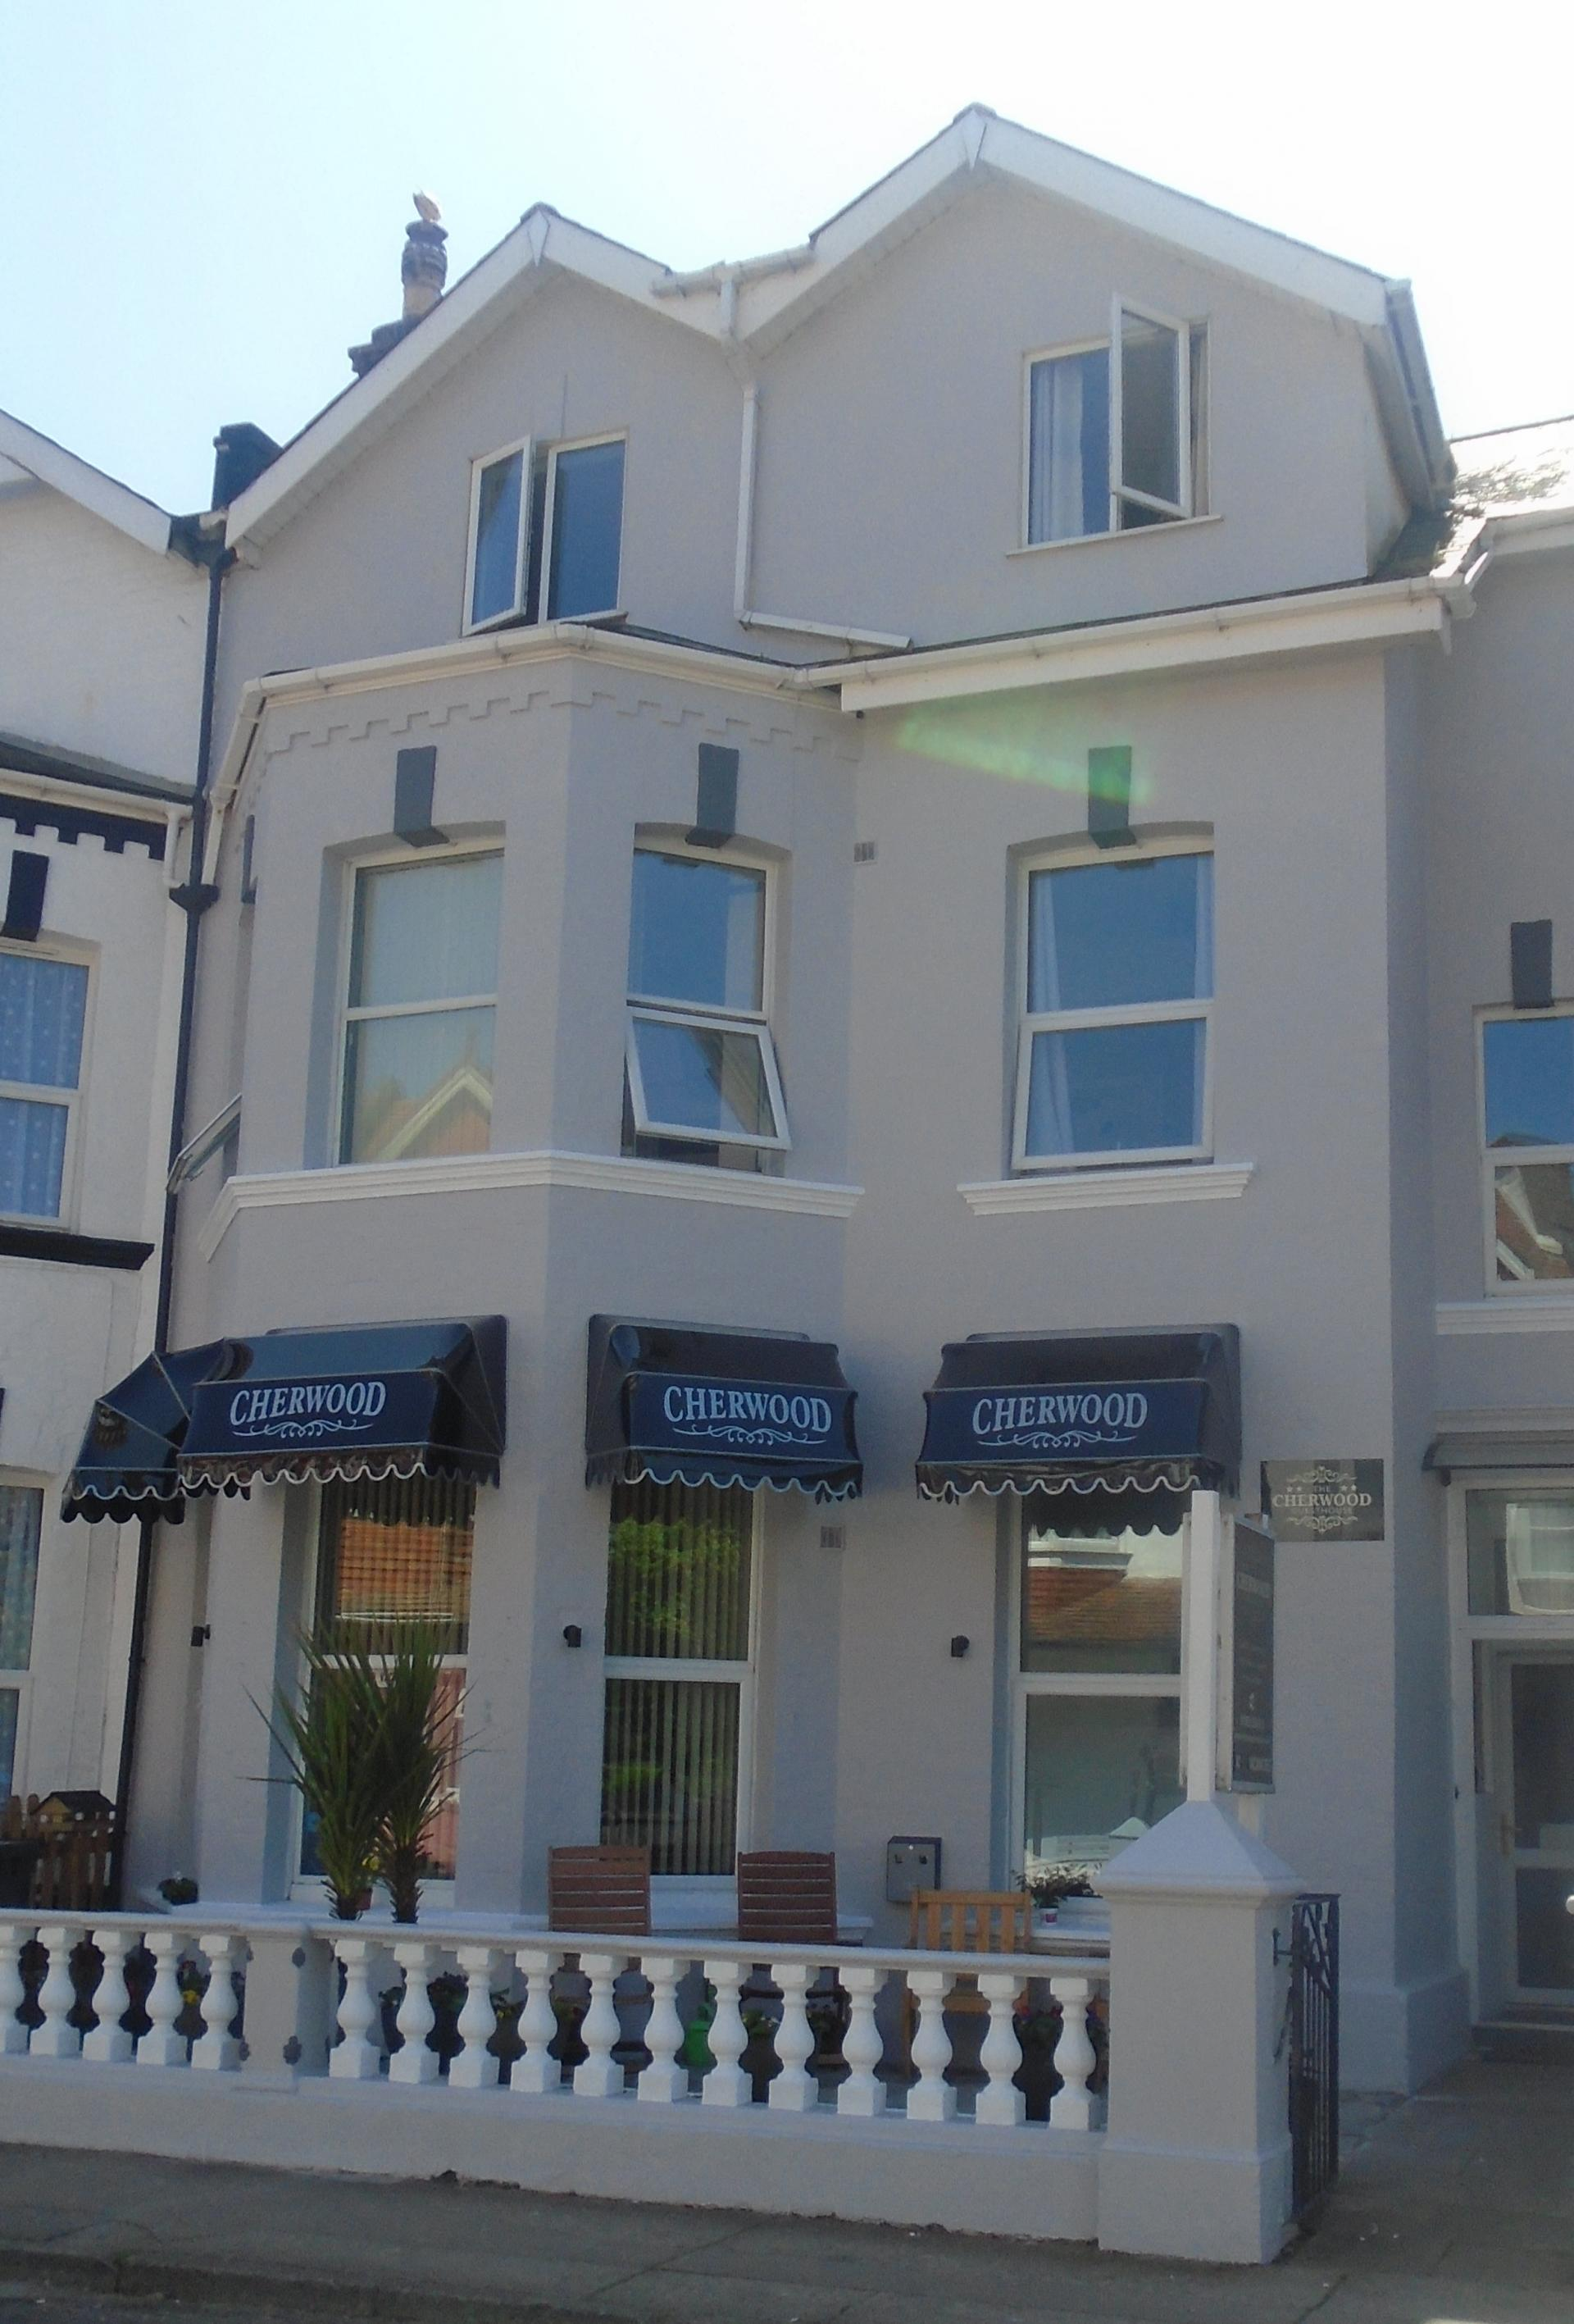 Cherwood Hotel in Torquay